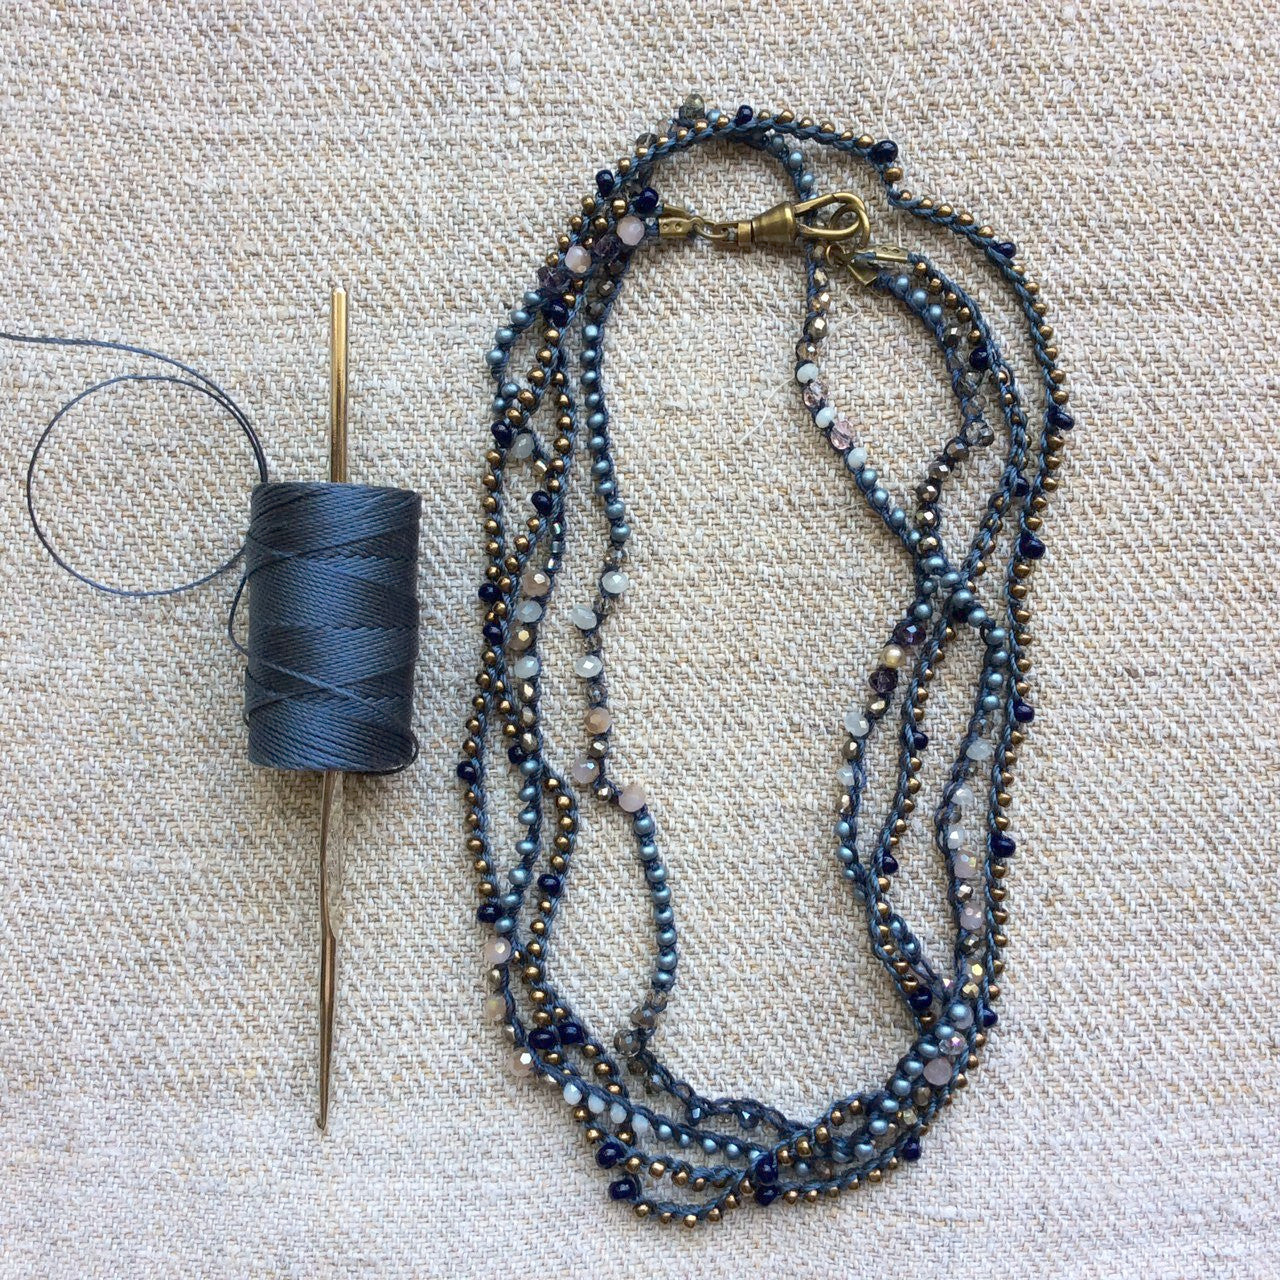 McKinney  Workshop - Crochet Beaded Jewelry Workshop / Monday, October 23rd 2017   10-1pm